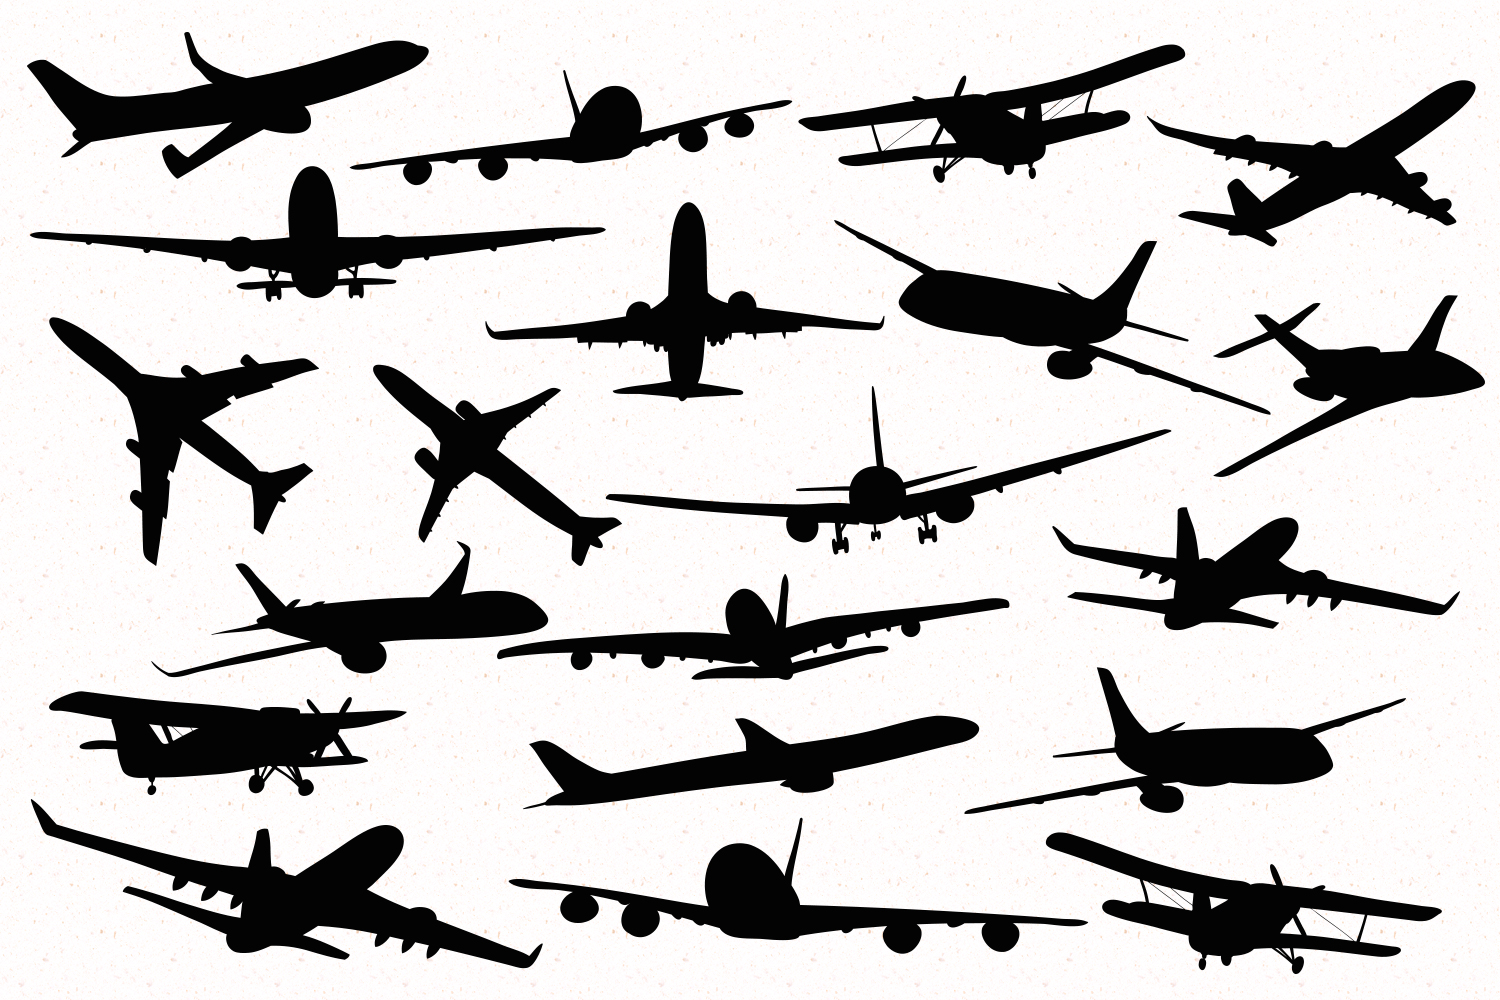 Airplanes Silhouettes example image 2